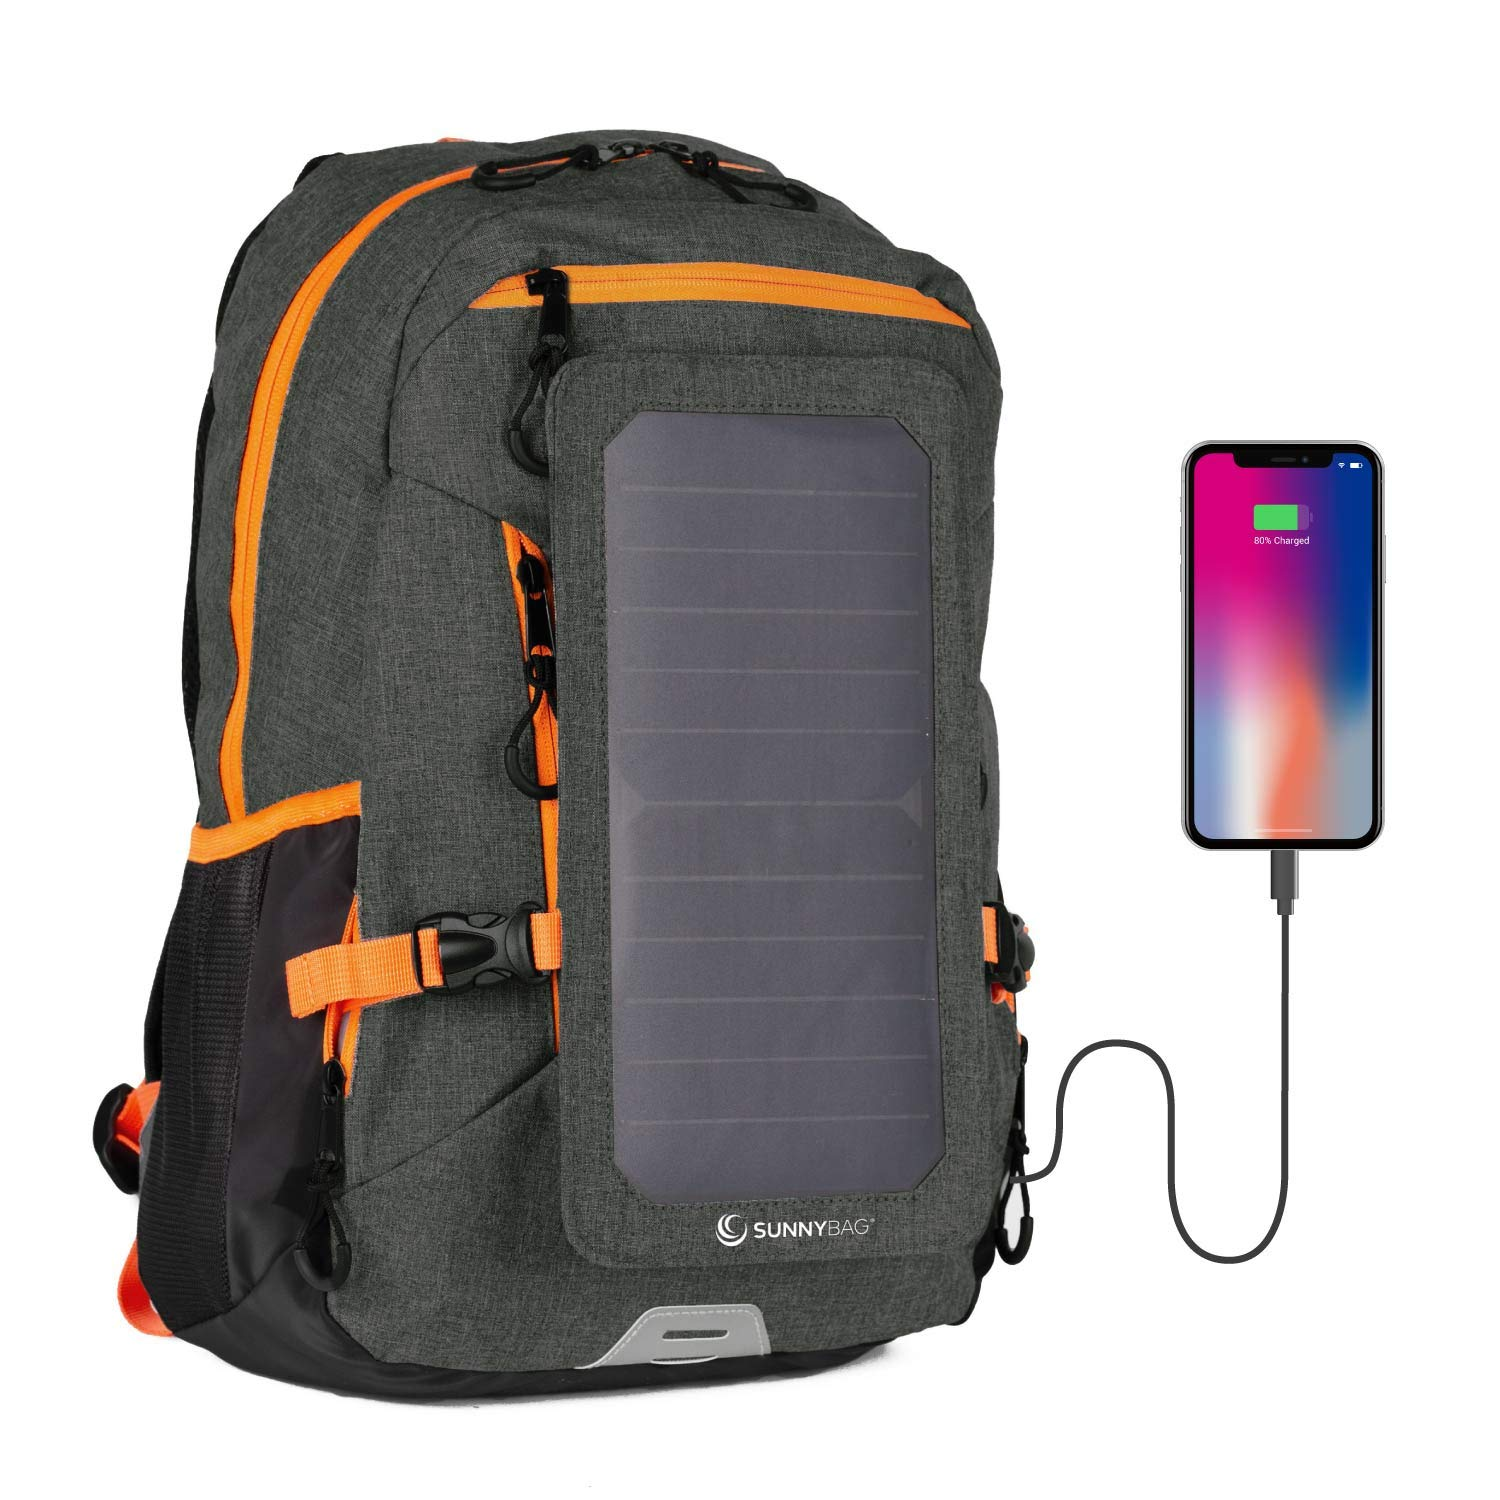 Sunnybag Explorer+ Solar Backpack | 15L Volume and 15'' Laptop Compartment | Black/Orange